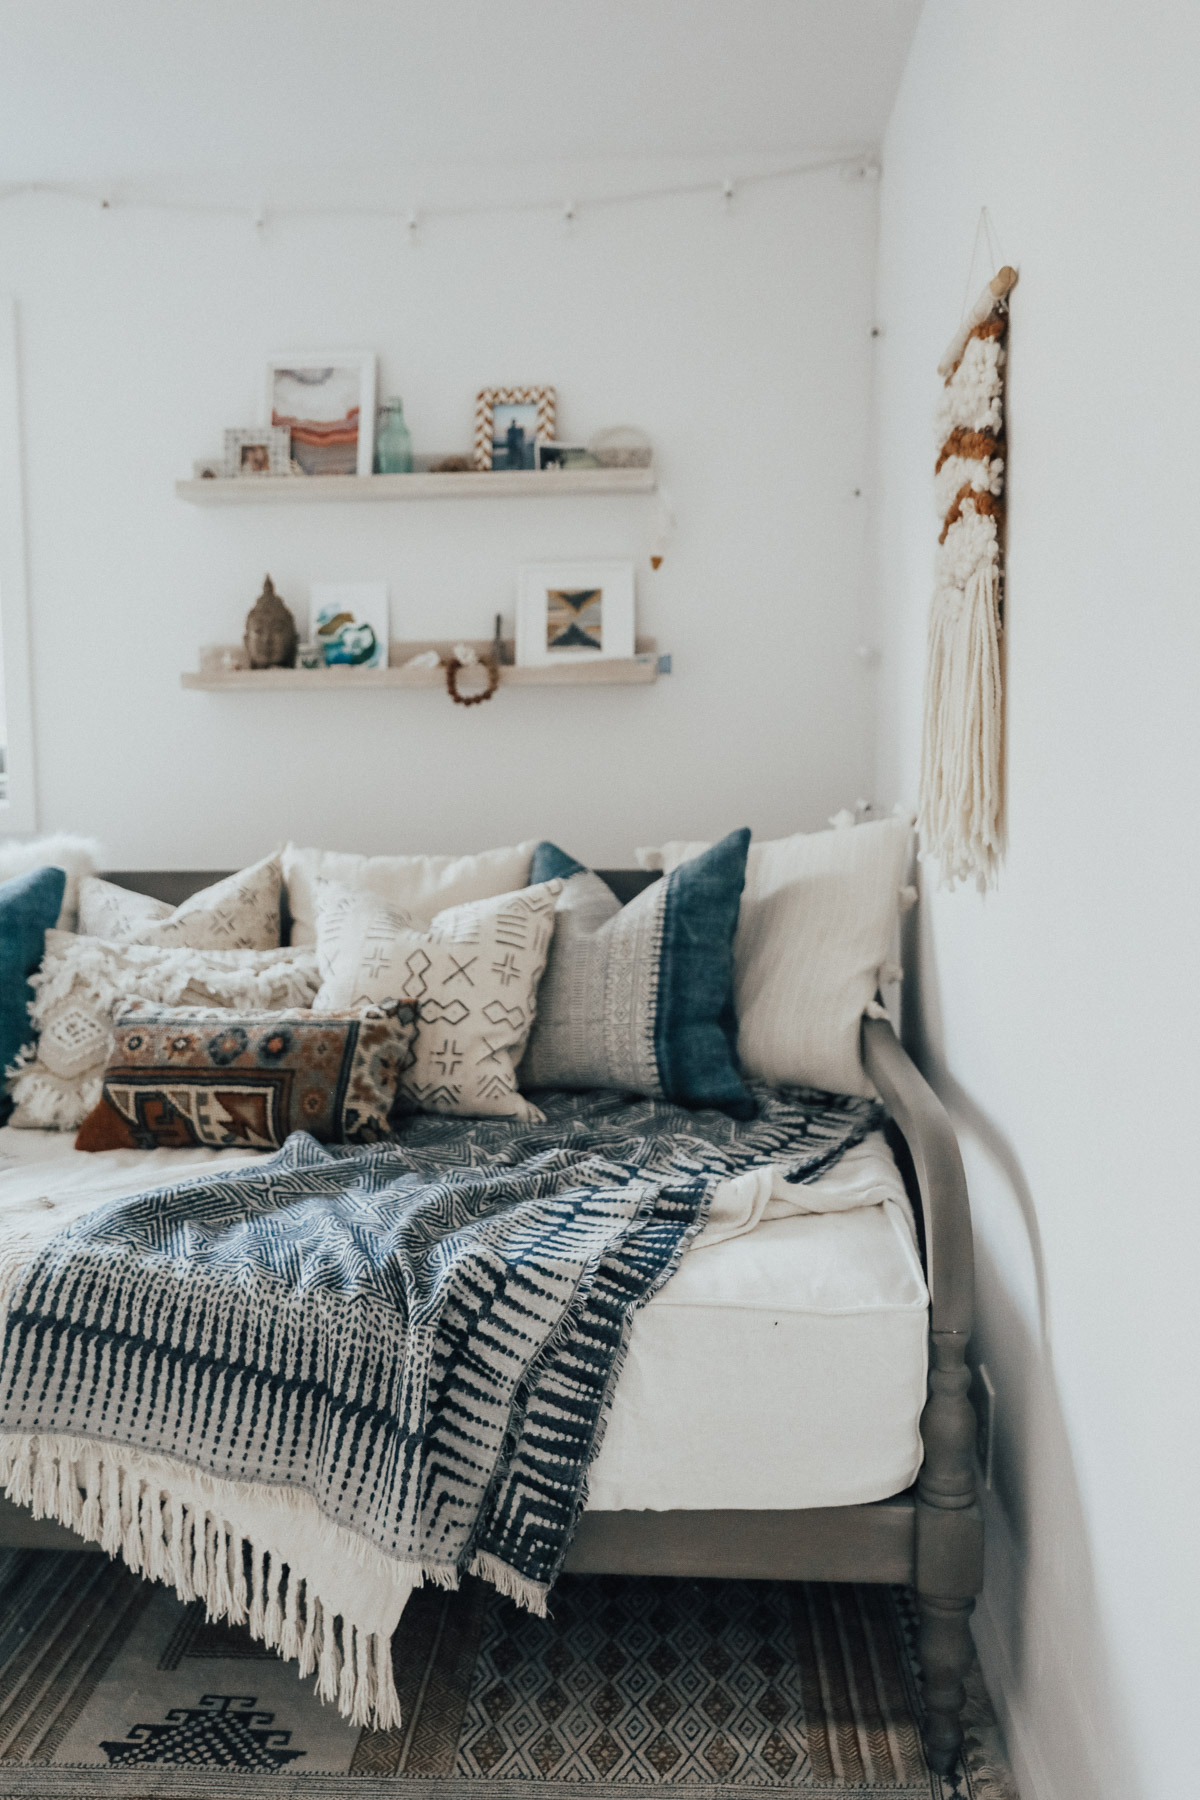 How To Style A Daybed Advice From Twenty Something